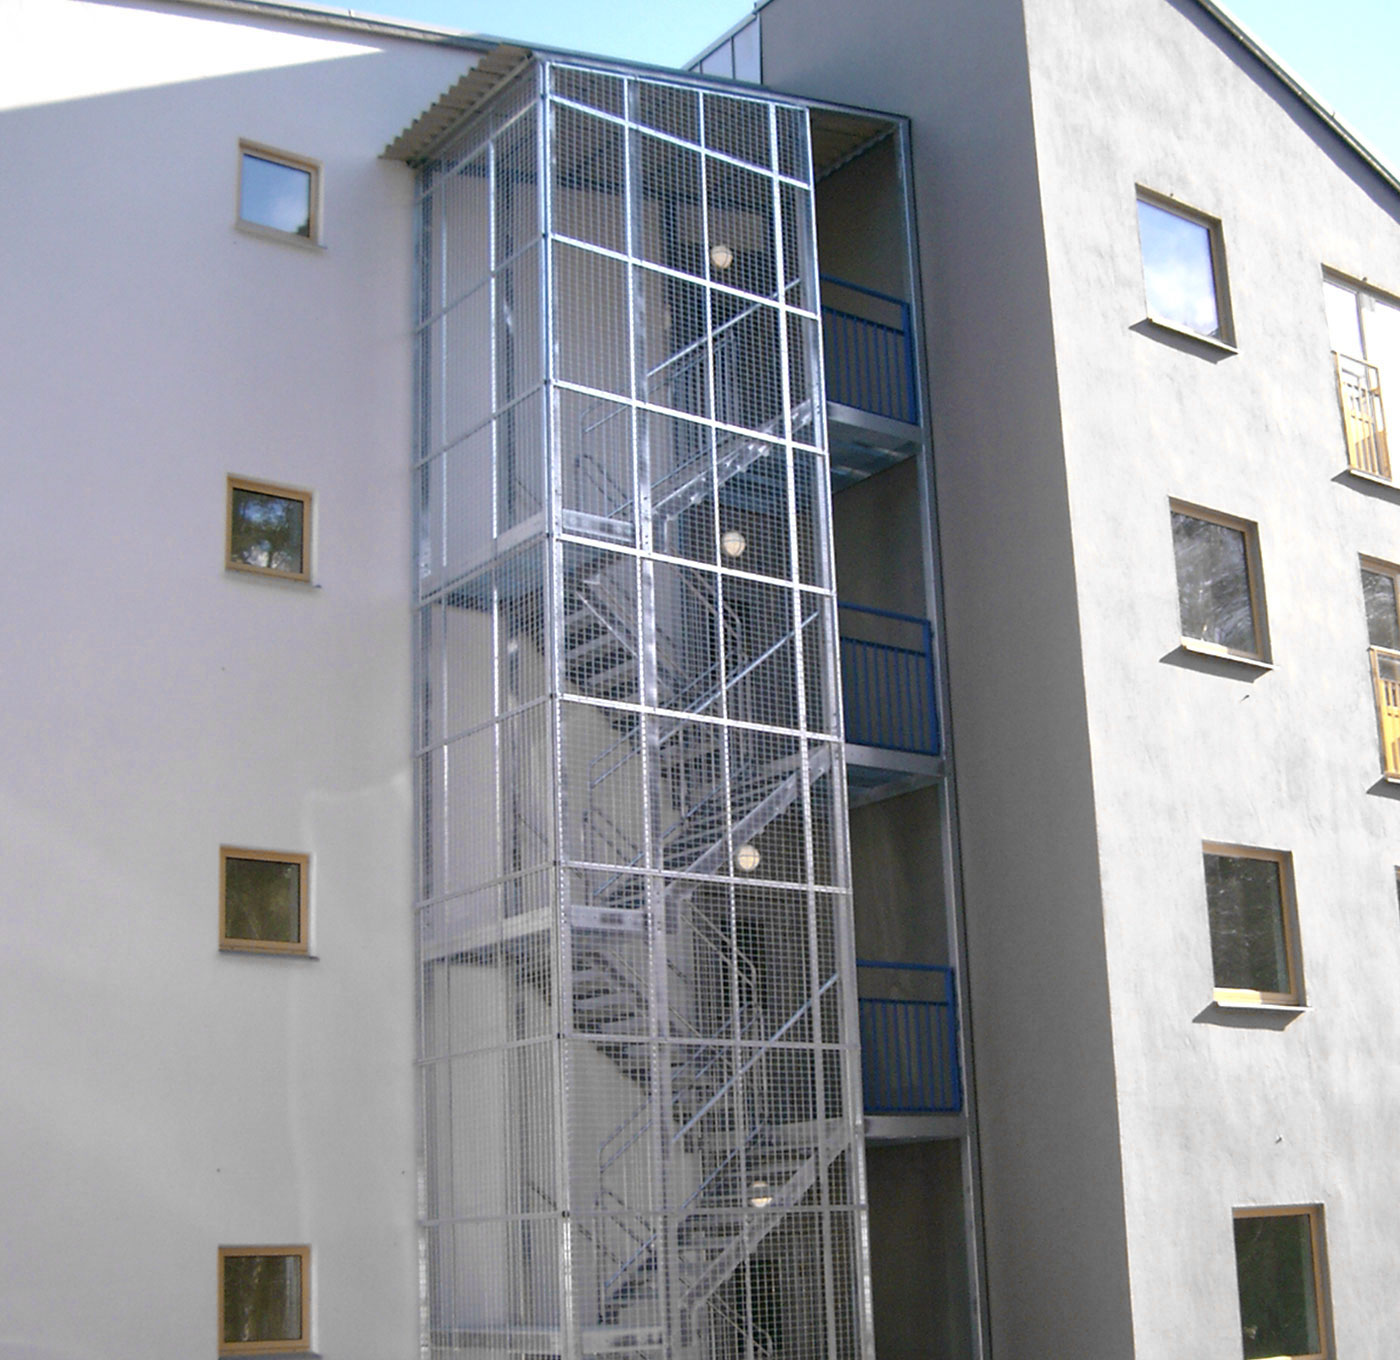 Straight staircase with protective cage